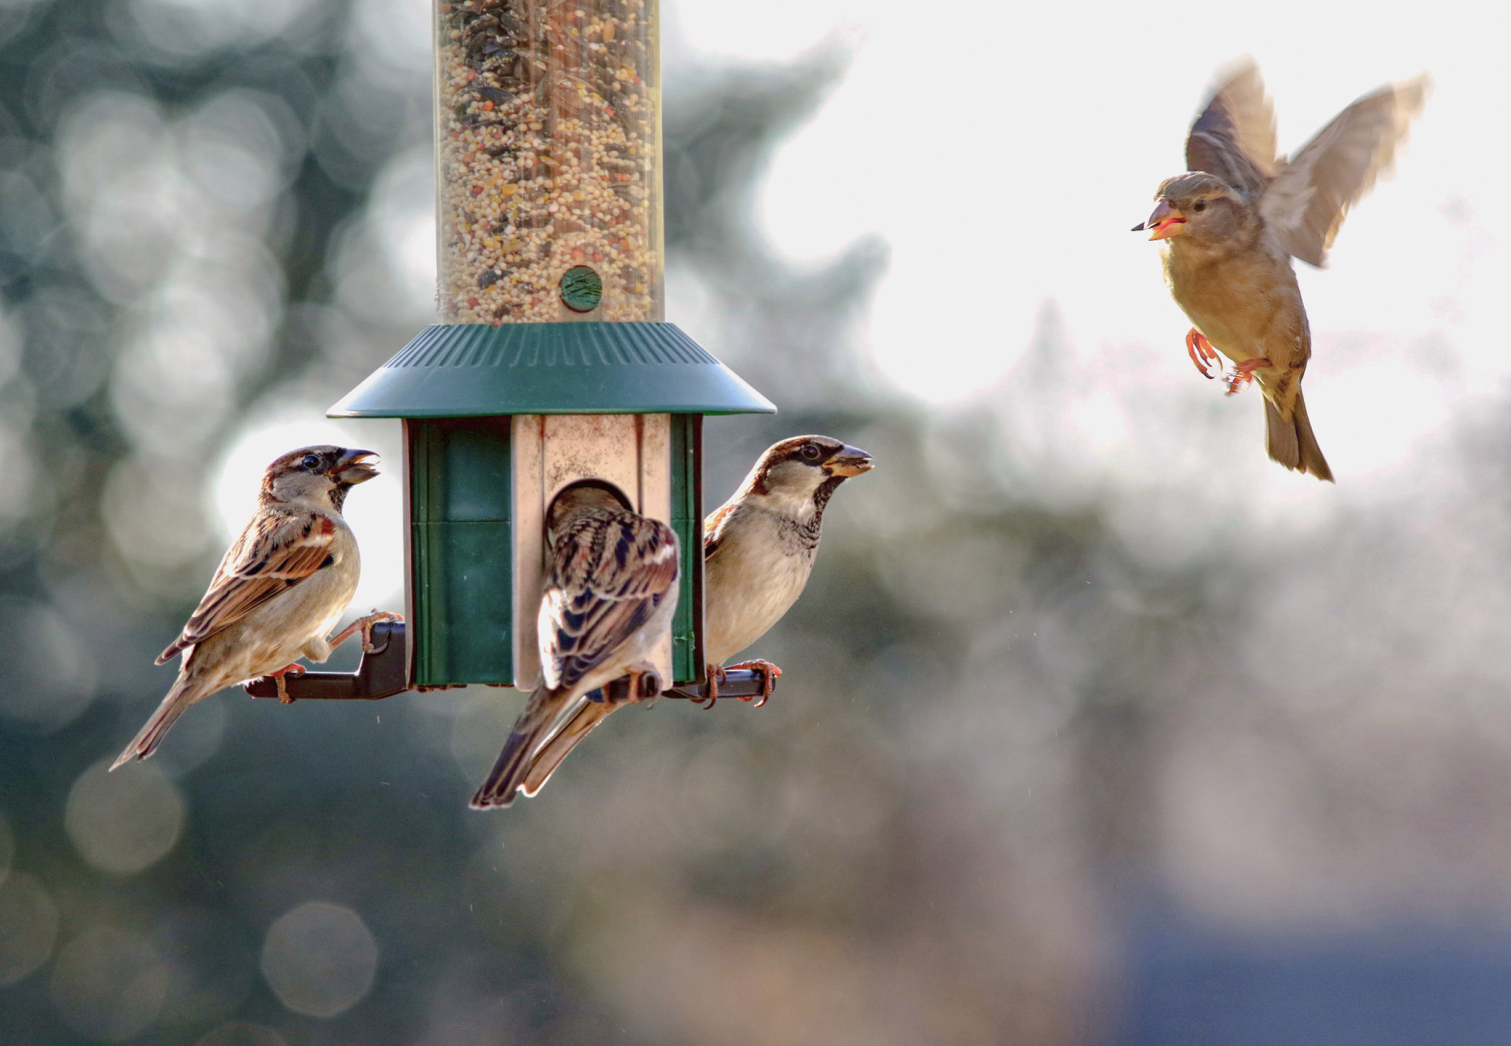 Birds won't eat at feeders where they don't feel safe and protected from predators. Finding the right spot can be a challenge, but worth it in the end. (blightylad-infocus/Getty Images) Sparrow about to descend onto a bird feeder.